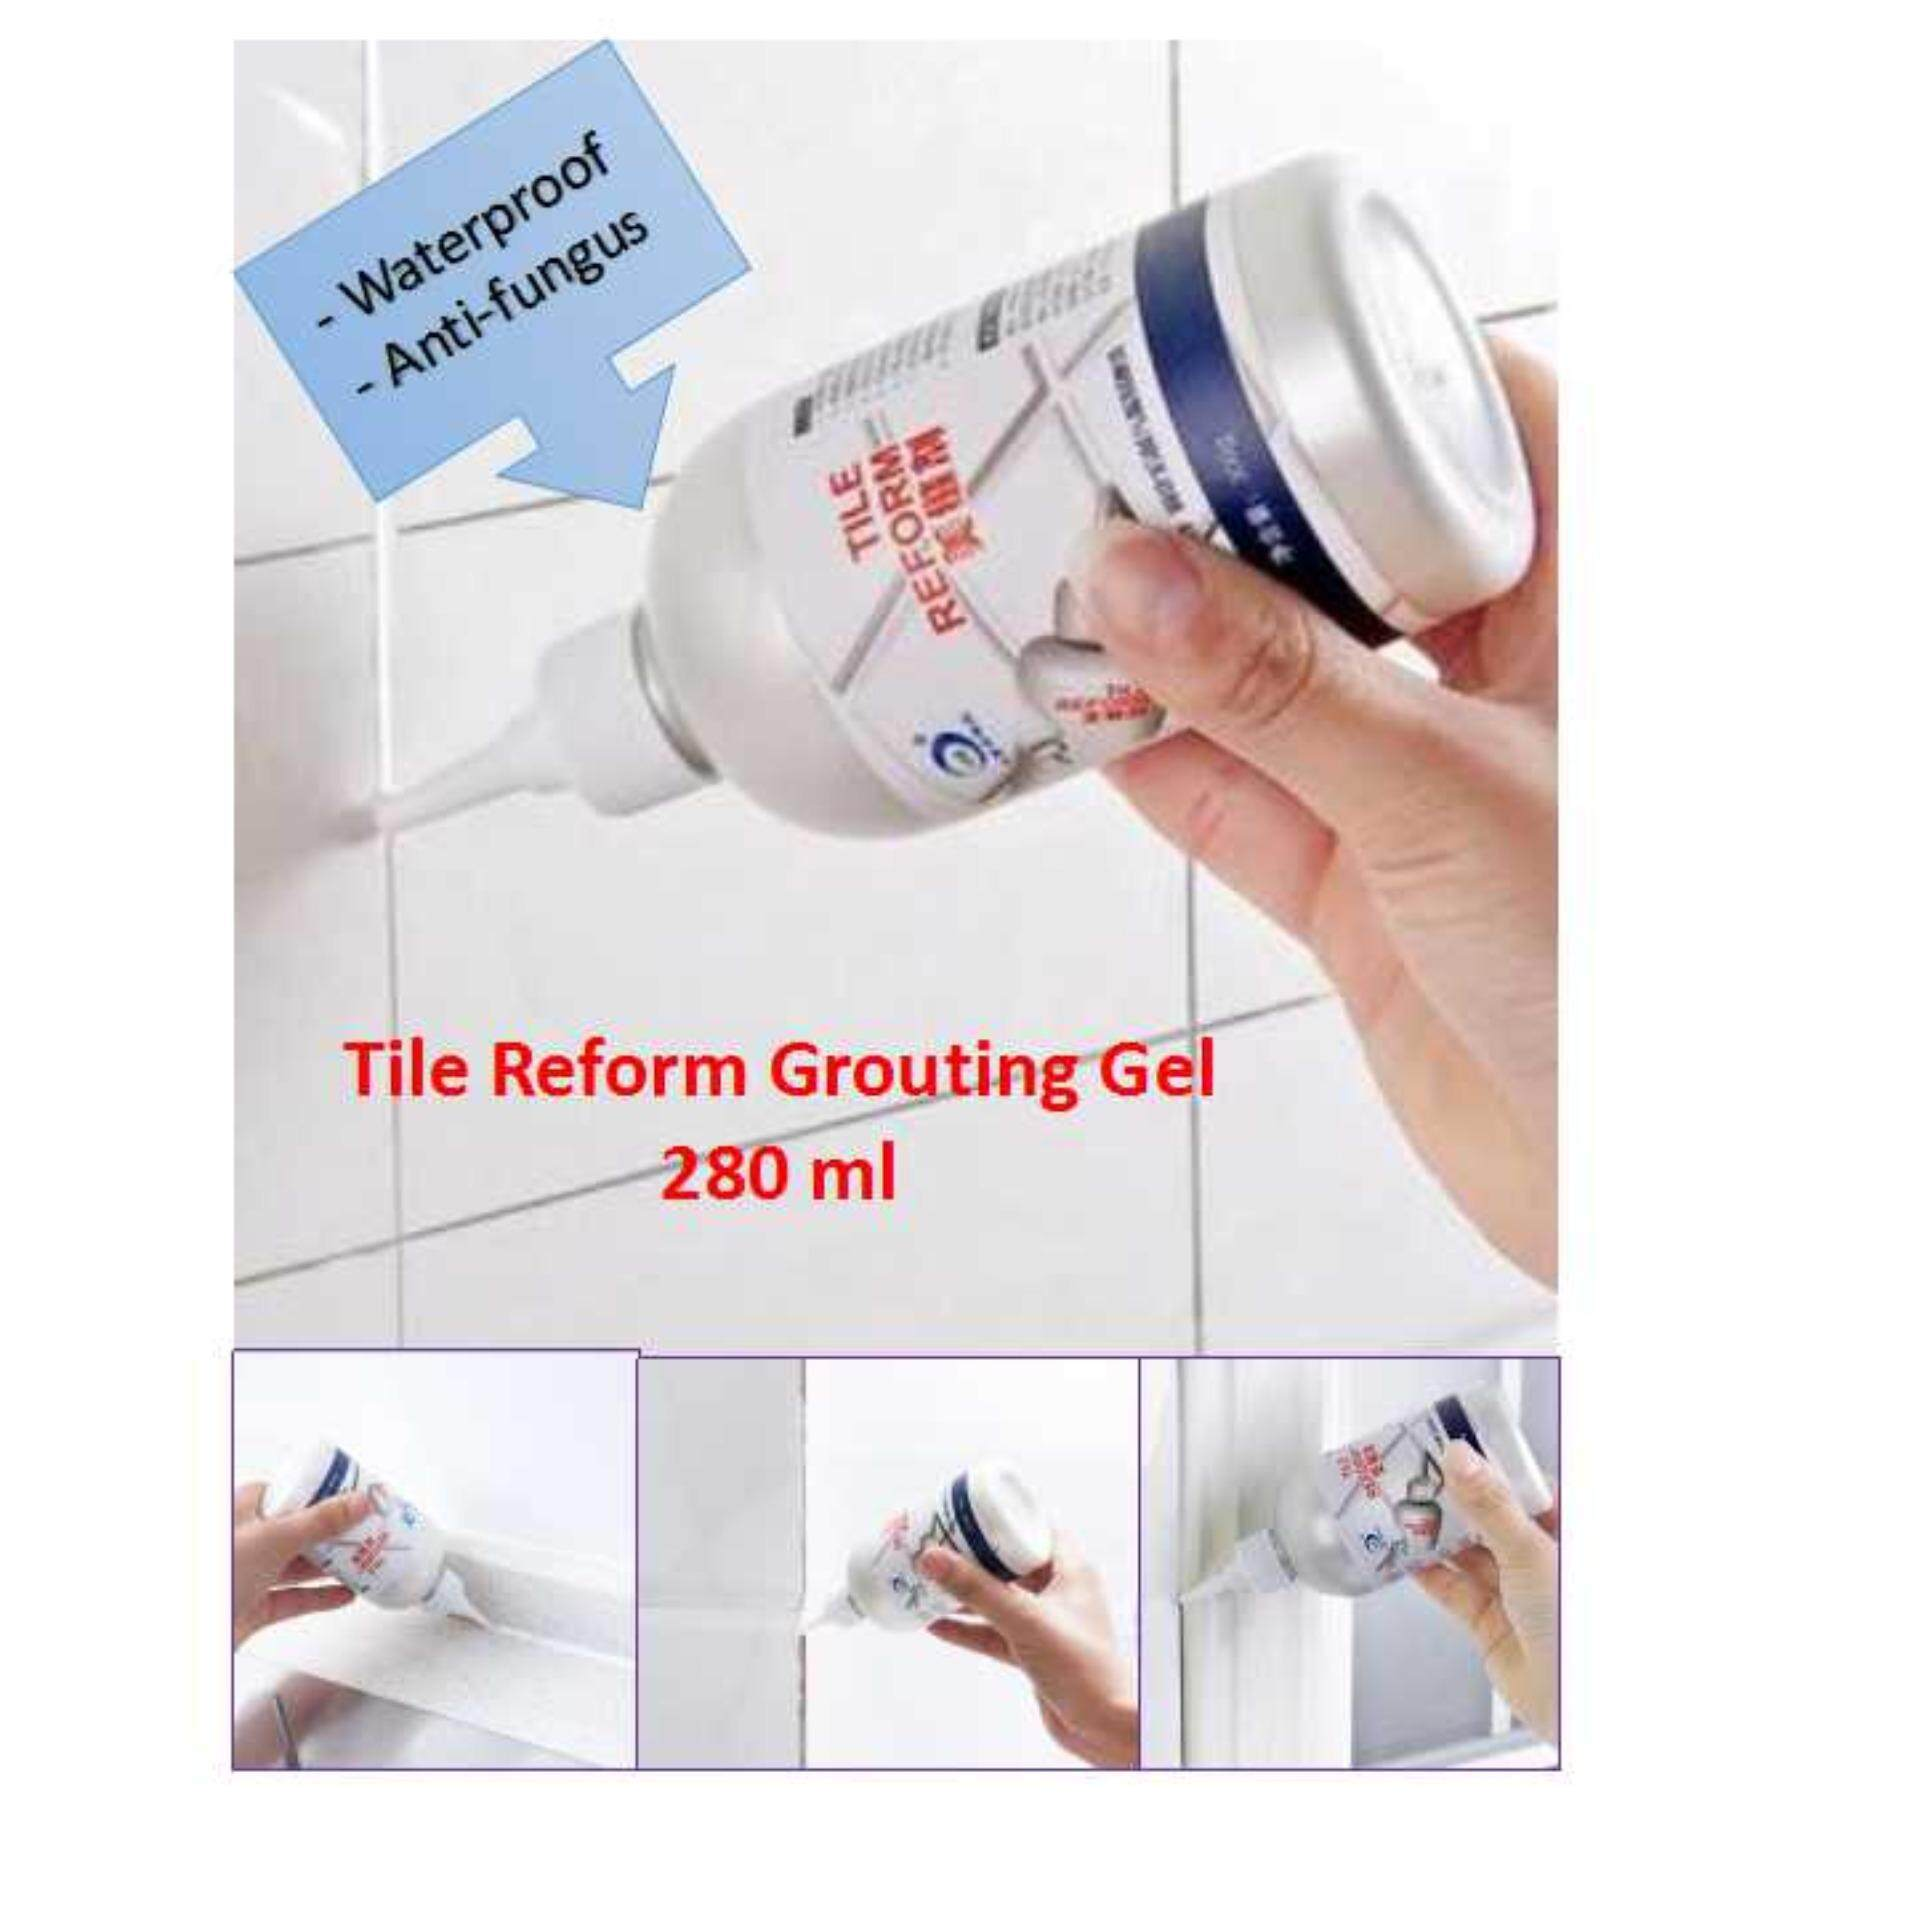 Tile Reform Grouting Gel Waterproof And Anti-Fungus 280ml By Stylishcp Store.